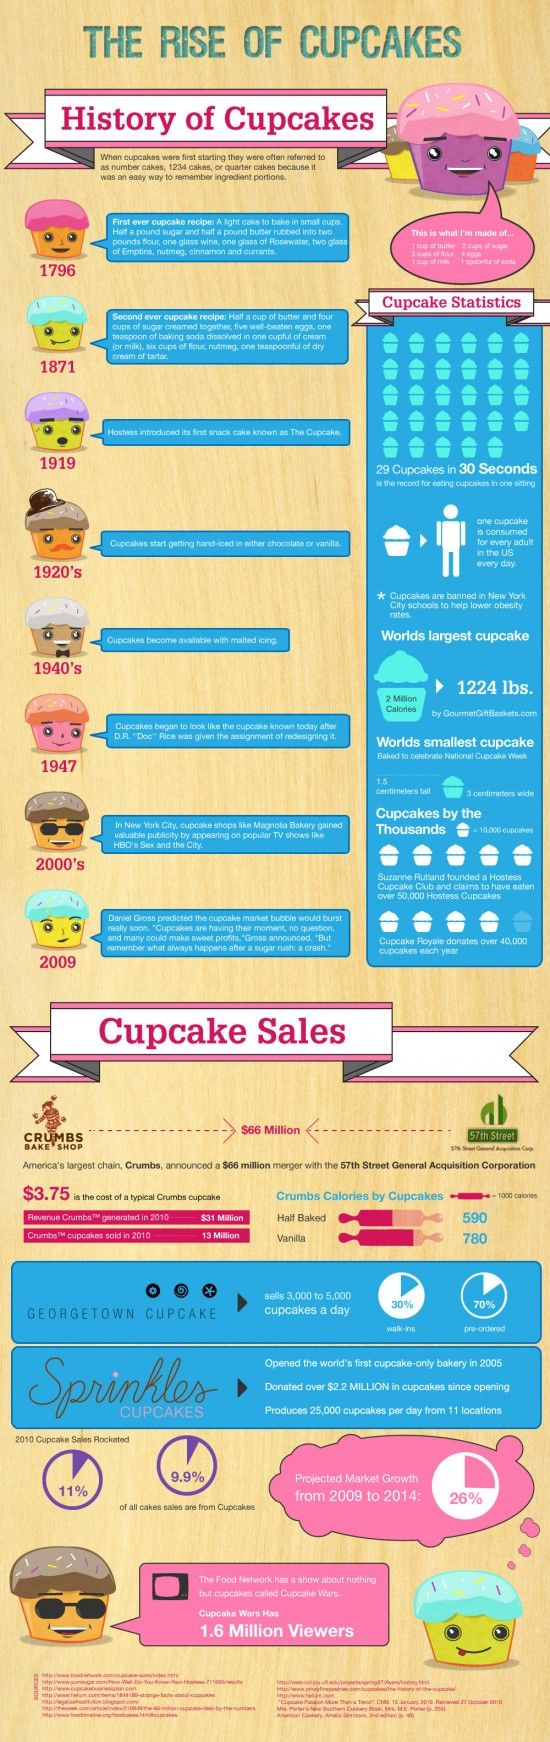 The History of Cupcakes [Infographic] | Mobile Cuisine - Food Trucks, Carts & Street Eating